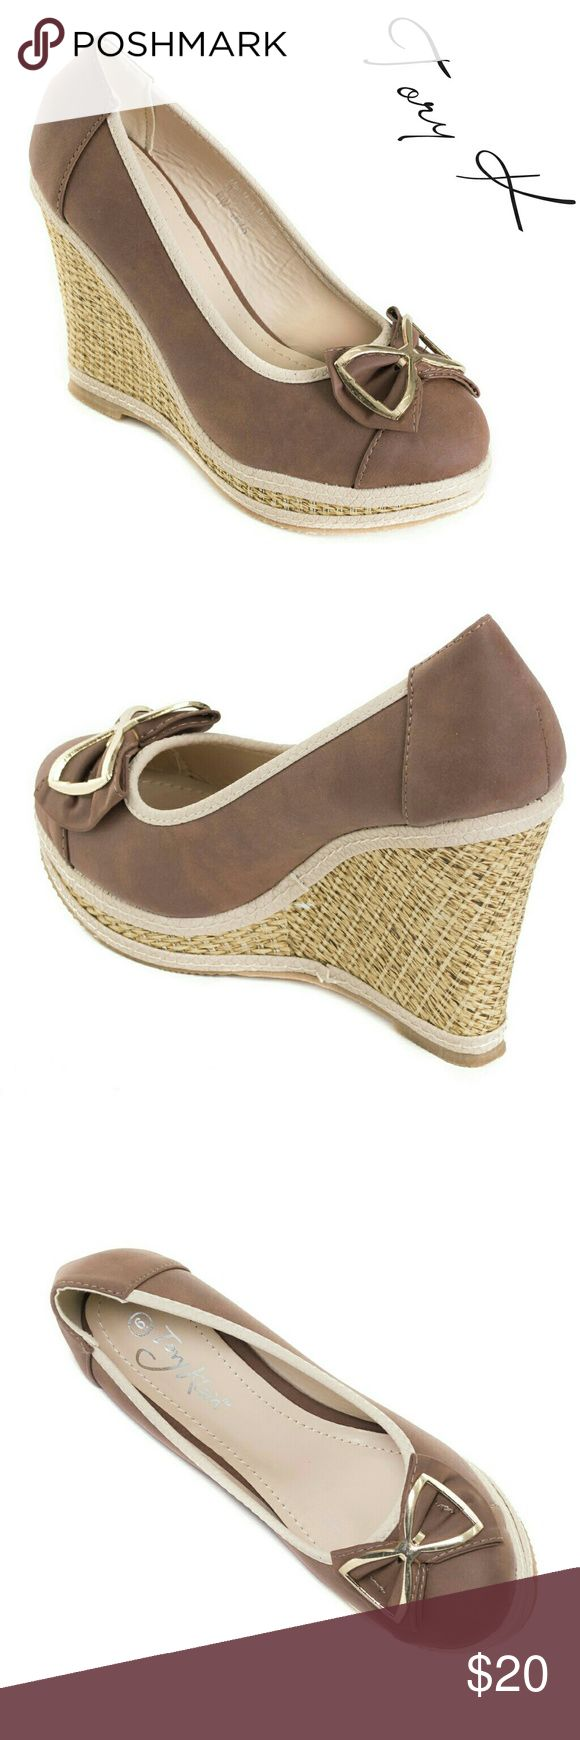 """Women Wedge Espadrilles with Bow, HW-1676, Brown Brand new Tory K platform espadrilles in PU leather with a beautiful metal bow in the front. Approx 4"""" woven platform, cushioned sole, very comfortable. Perfect for a summer vacation! A true statement in ladies shoes fashion! If you are between sizes, order up - they run a tad tight. Size 9 measures 9.5 inches on the inside of the sole, all sizes are half an inch apart in length. Tory K  Shoes Wedges"""